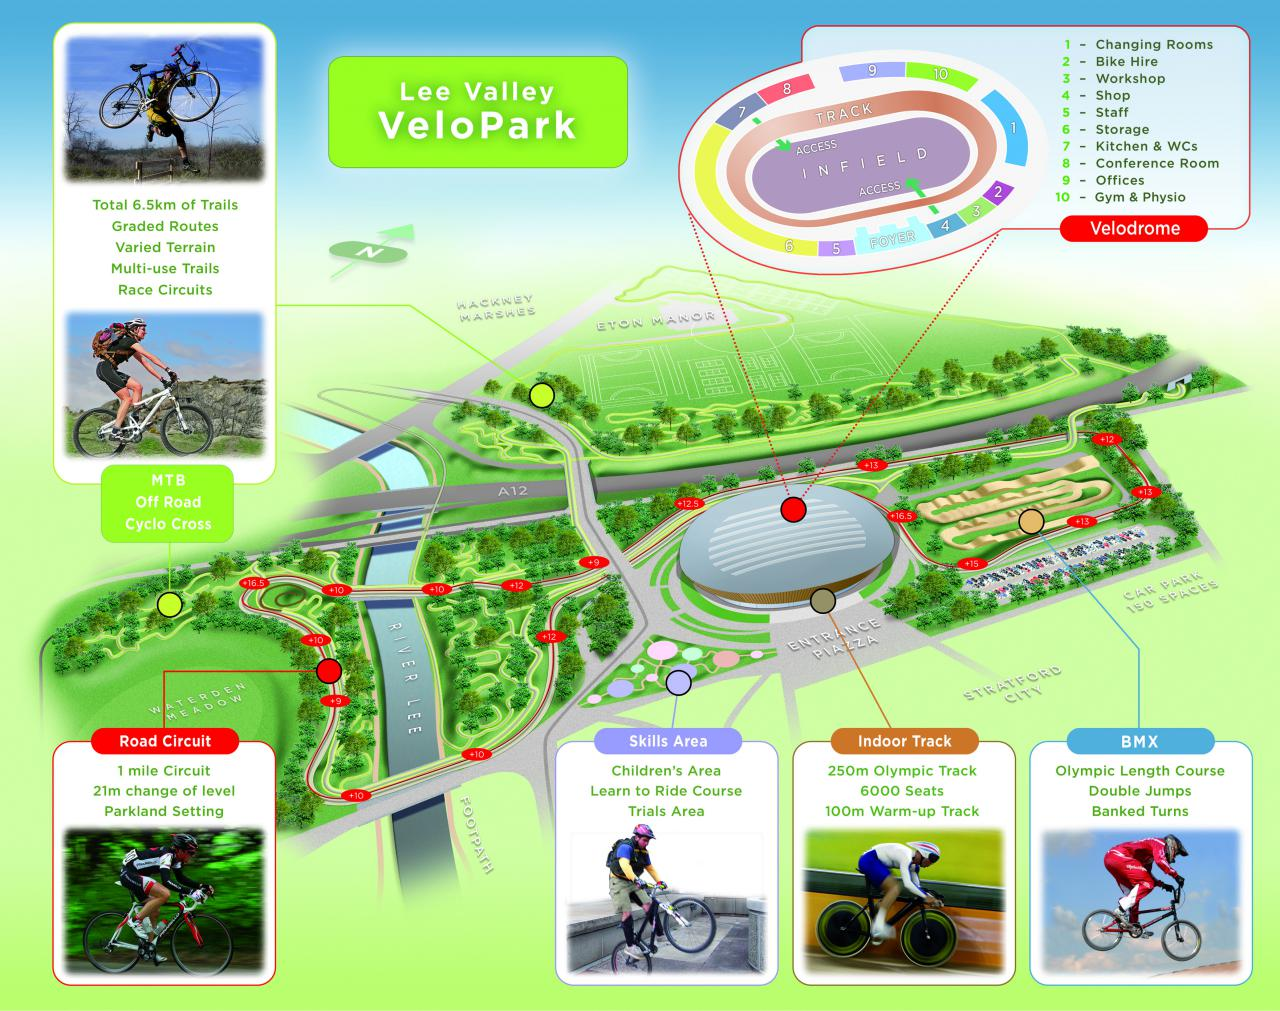 London's Olympic VeloPark opens for business | road cc